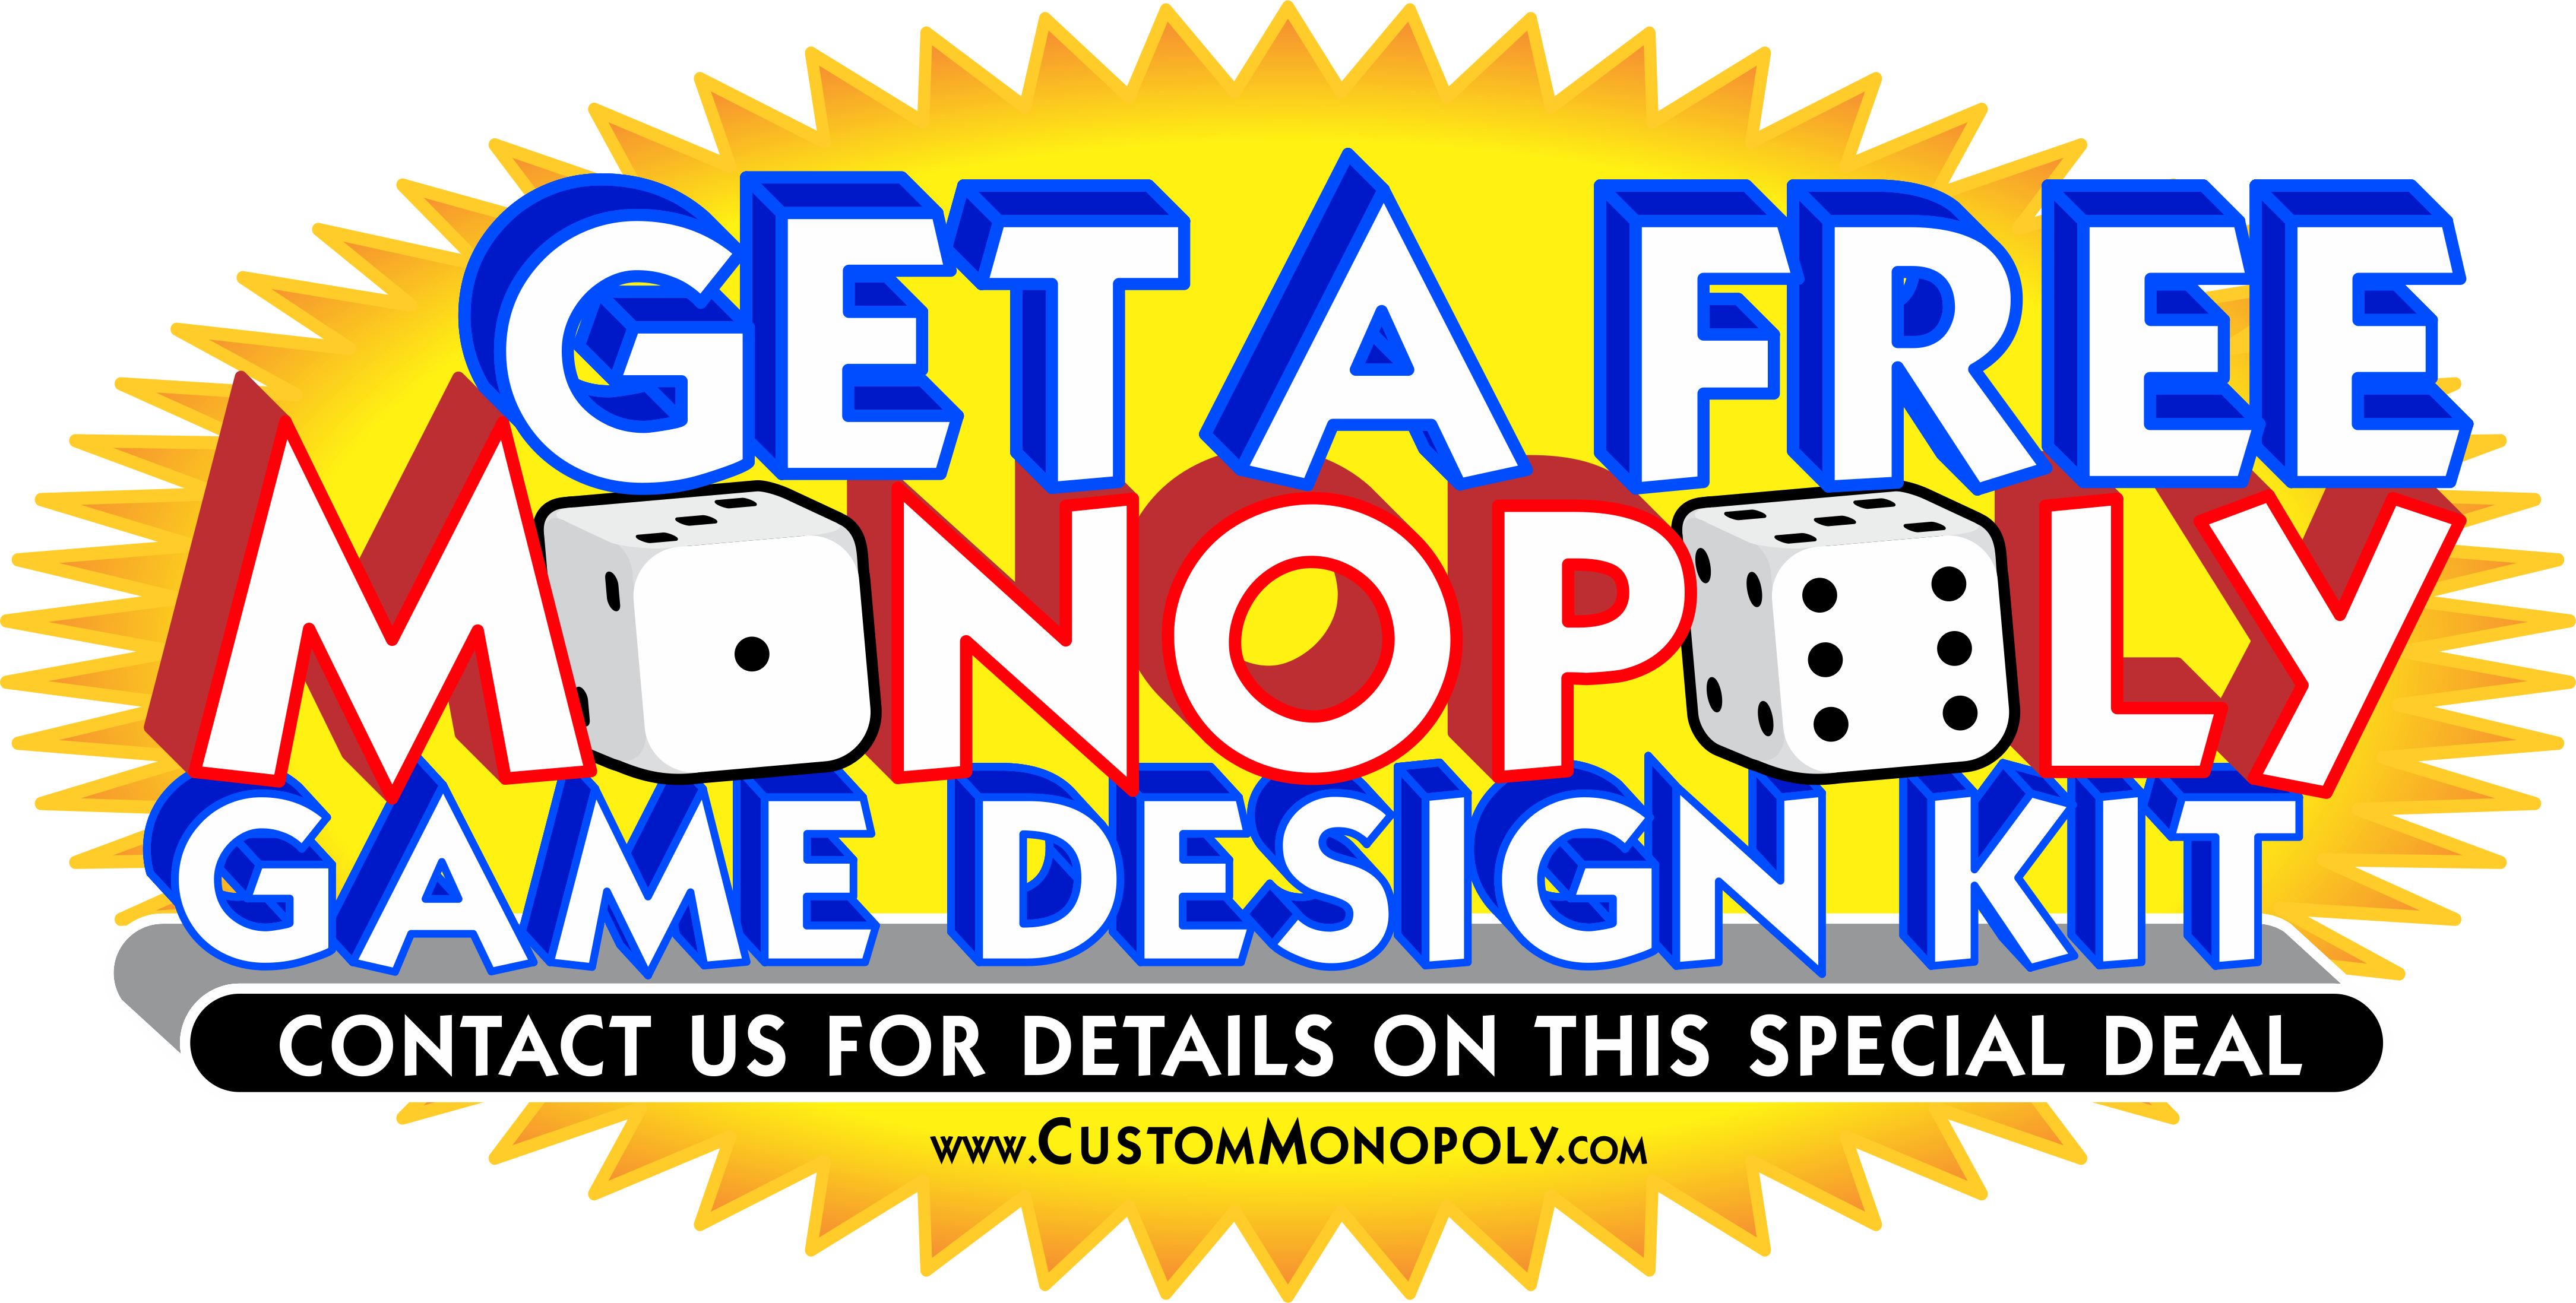 Contact Us for a FREE MONOPOLY Game Design Kit